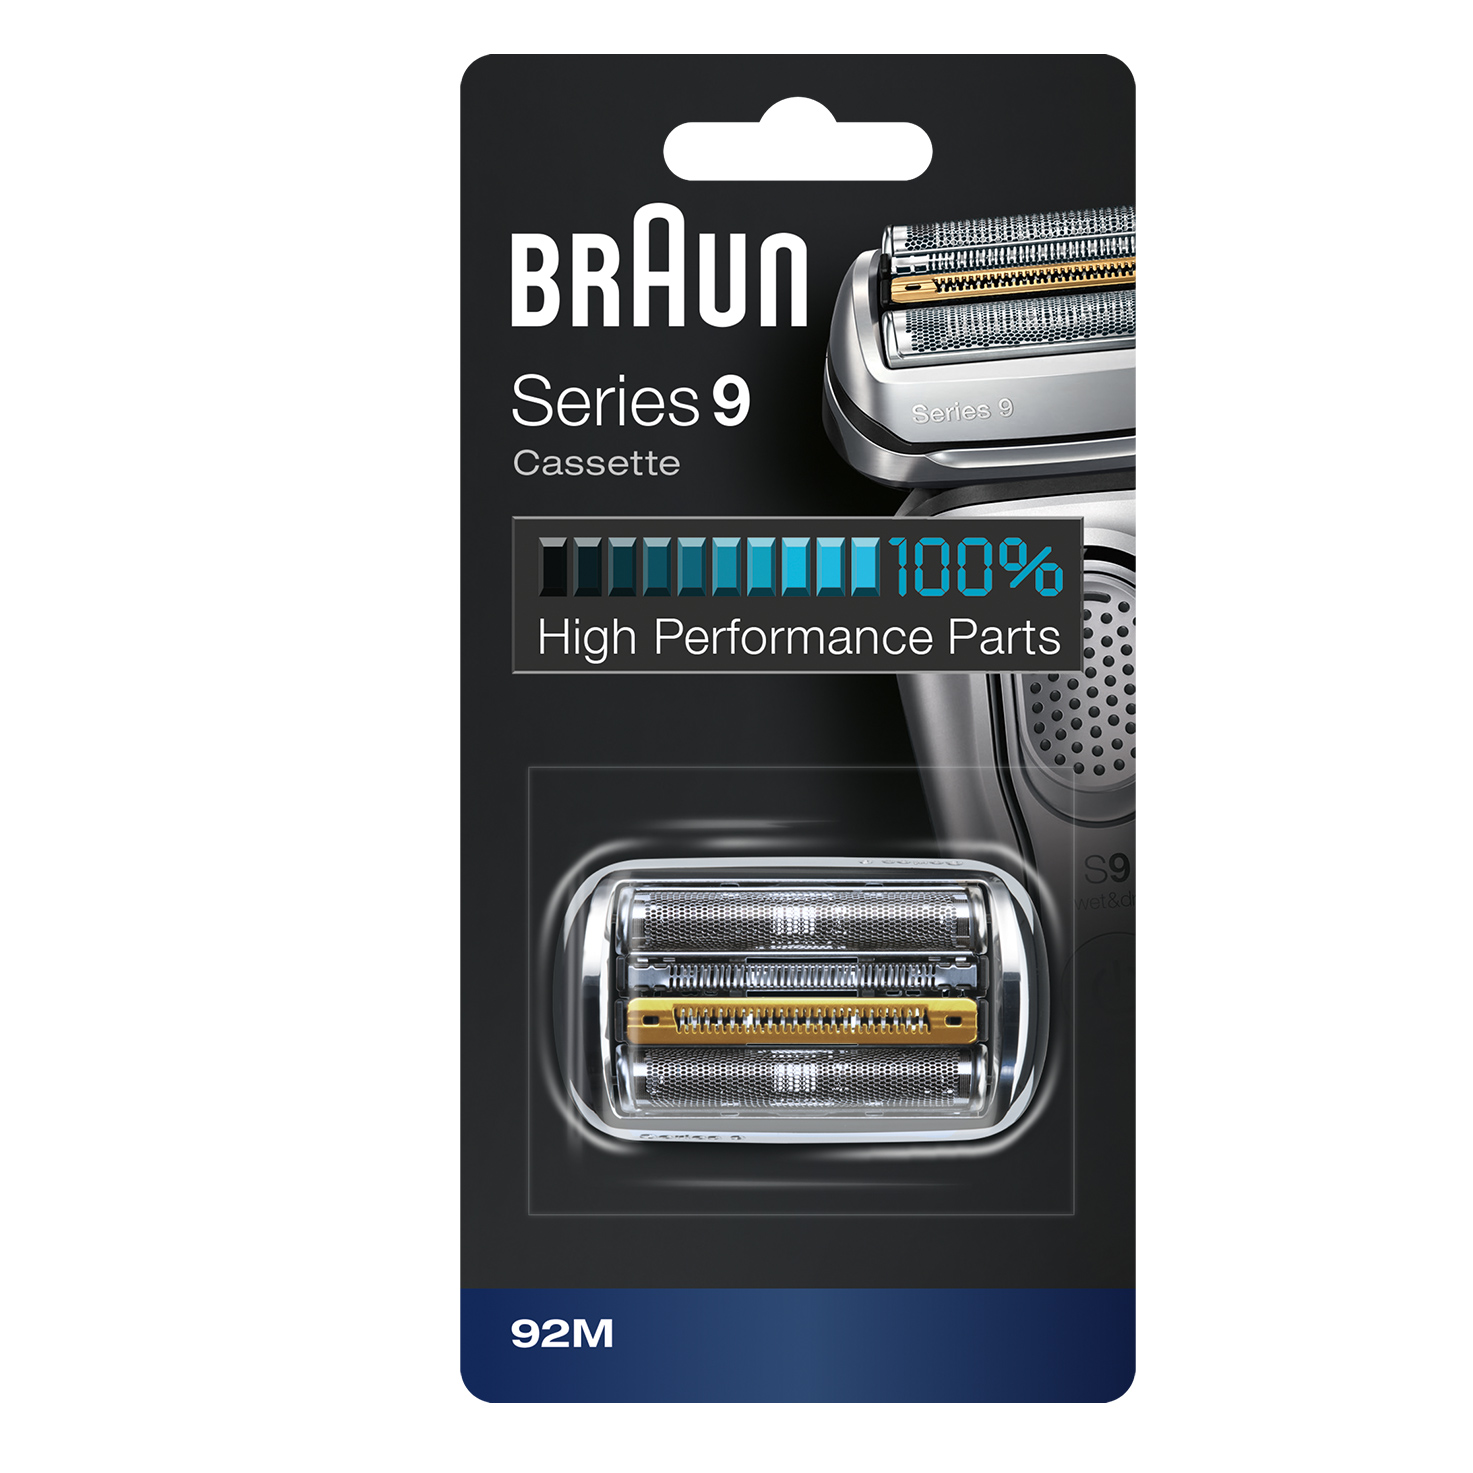 Braun Shaver Replacement Part 90M silver